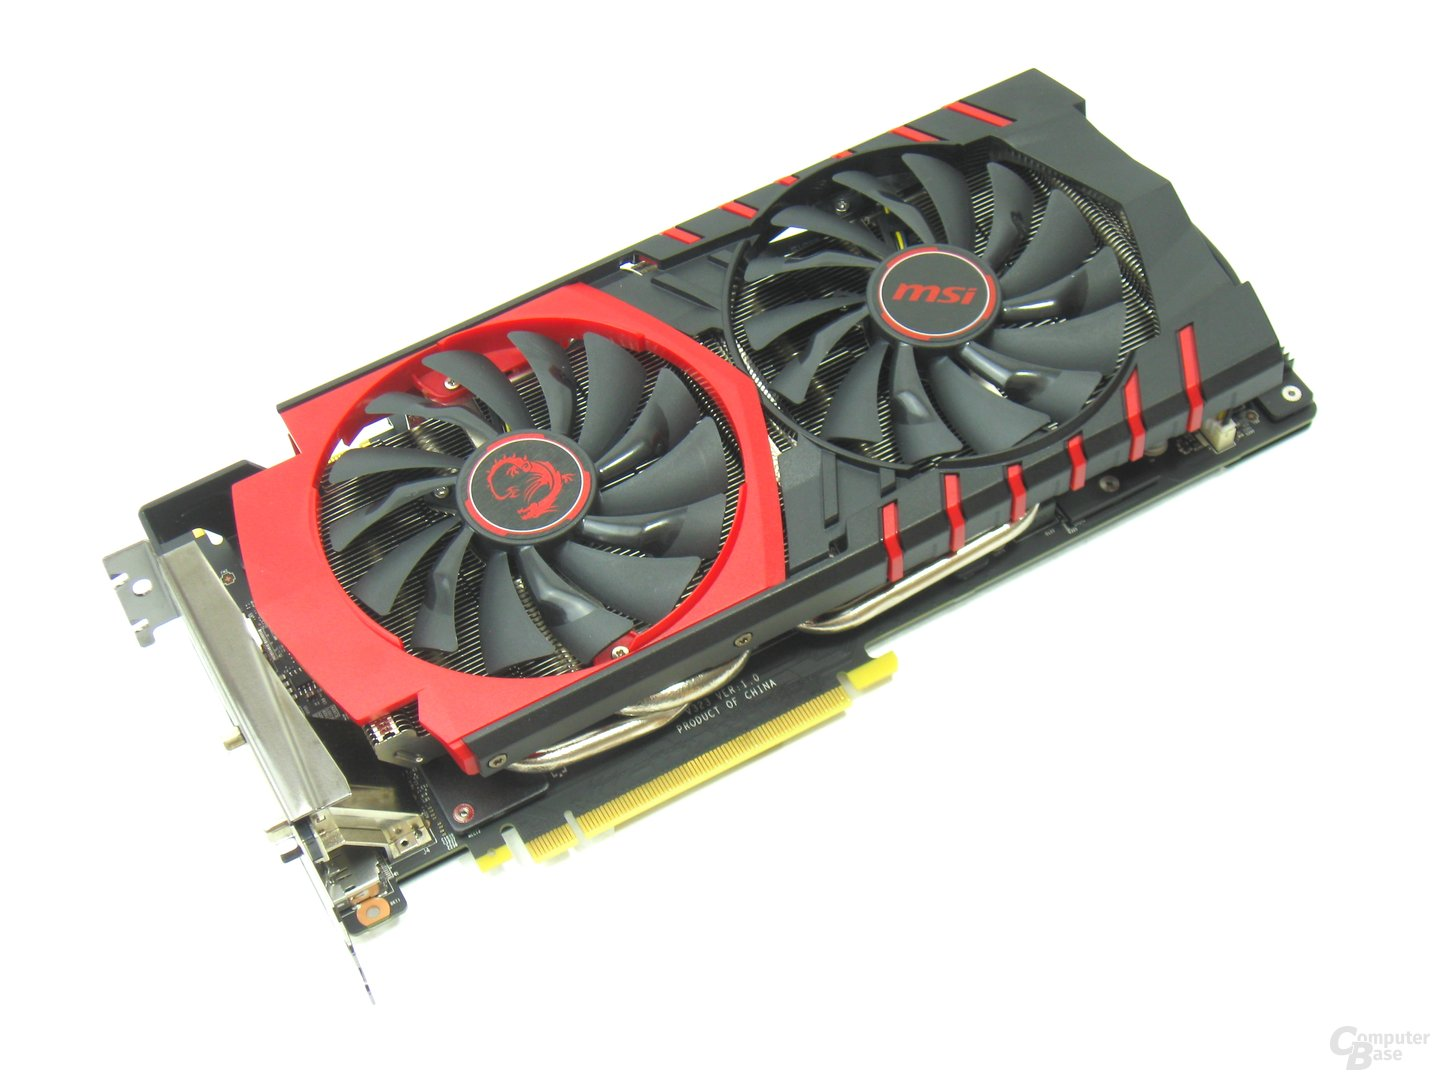 MSI GeForce GTX 980 Ti Gaming 6G